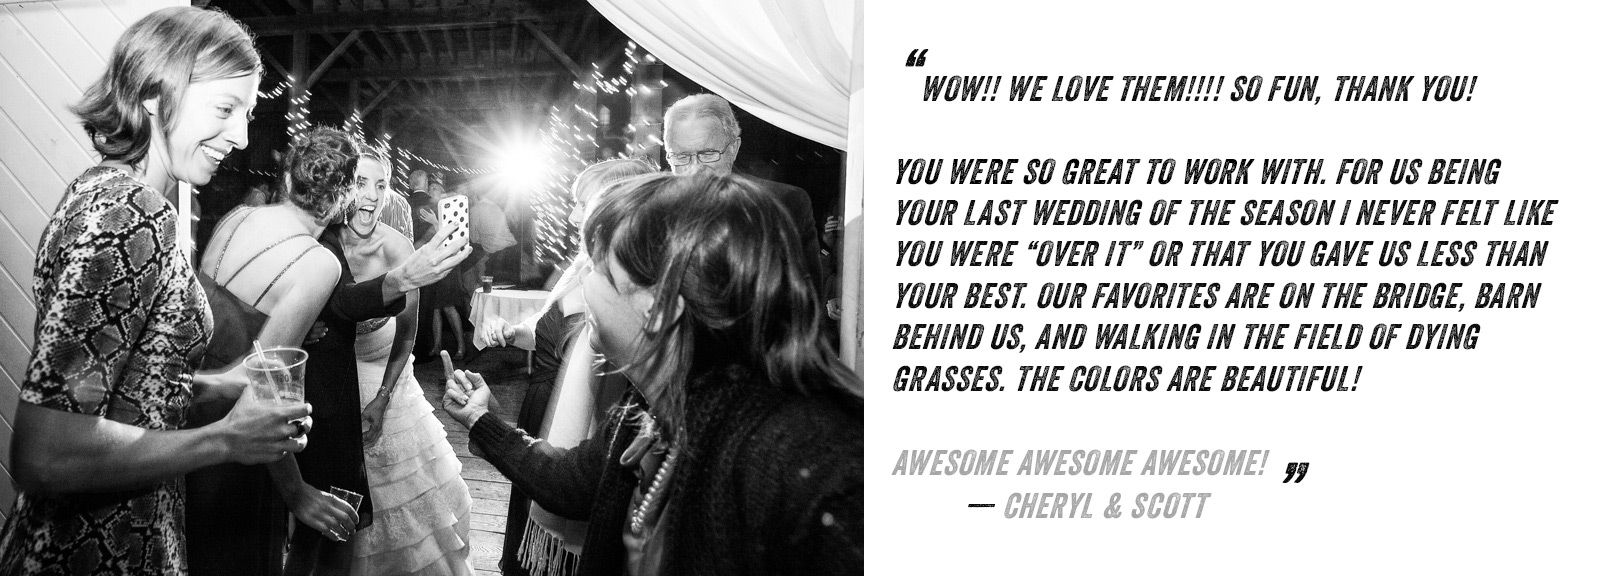 Bride and groom testimonial of their awesome experience with Eve Event Photography.